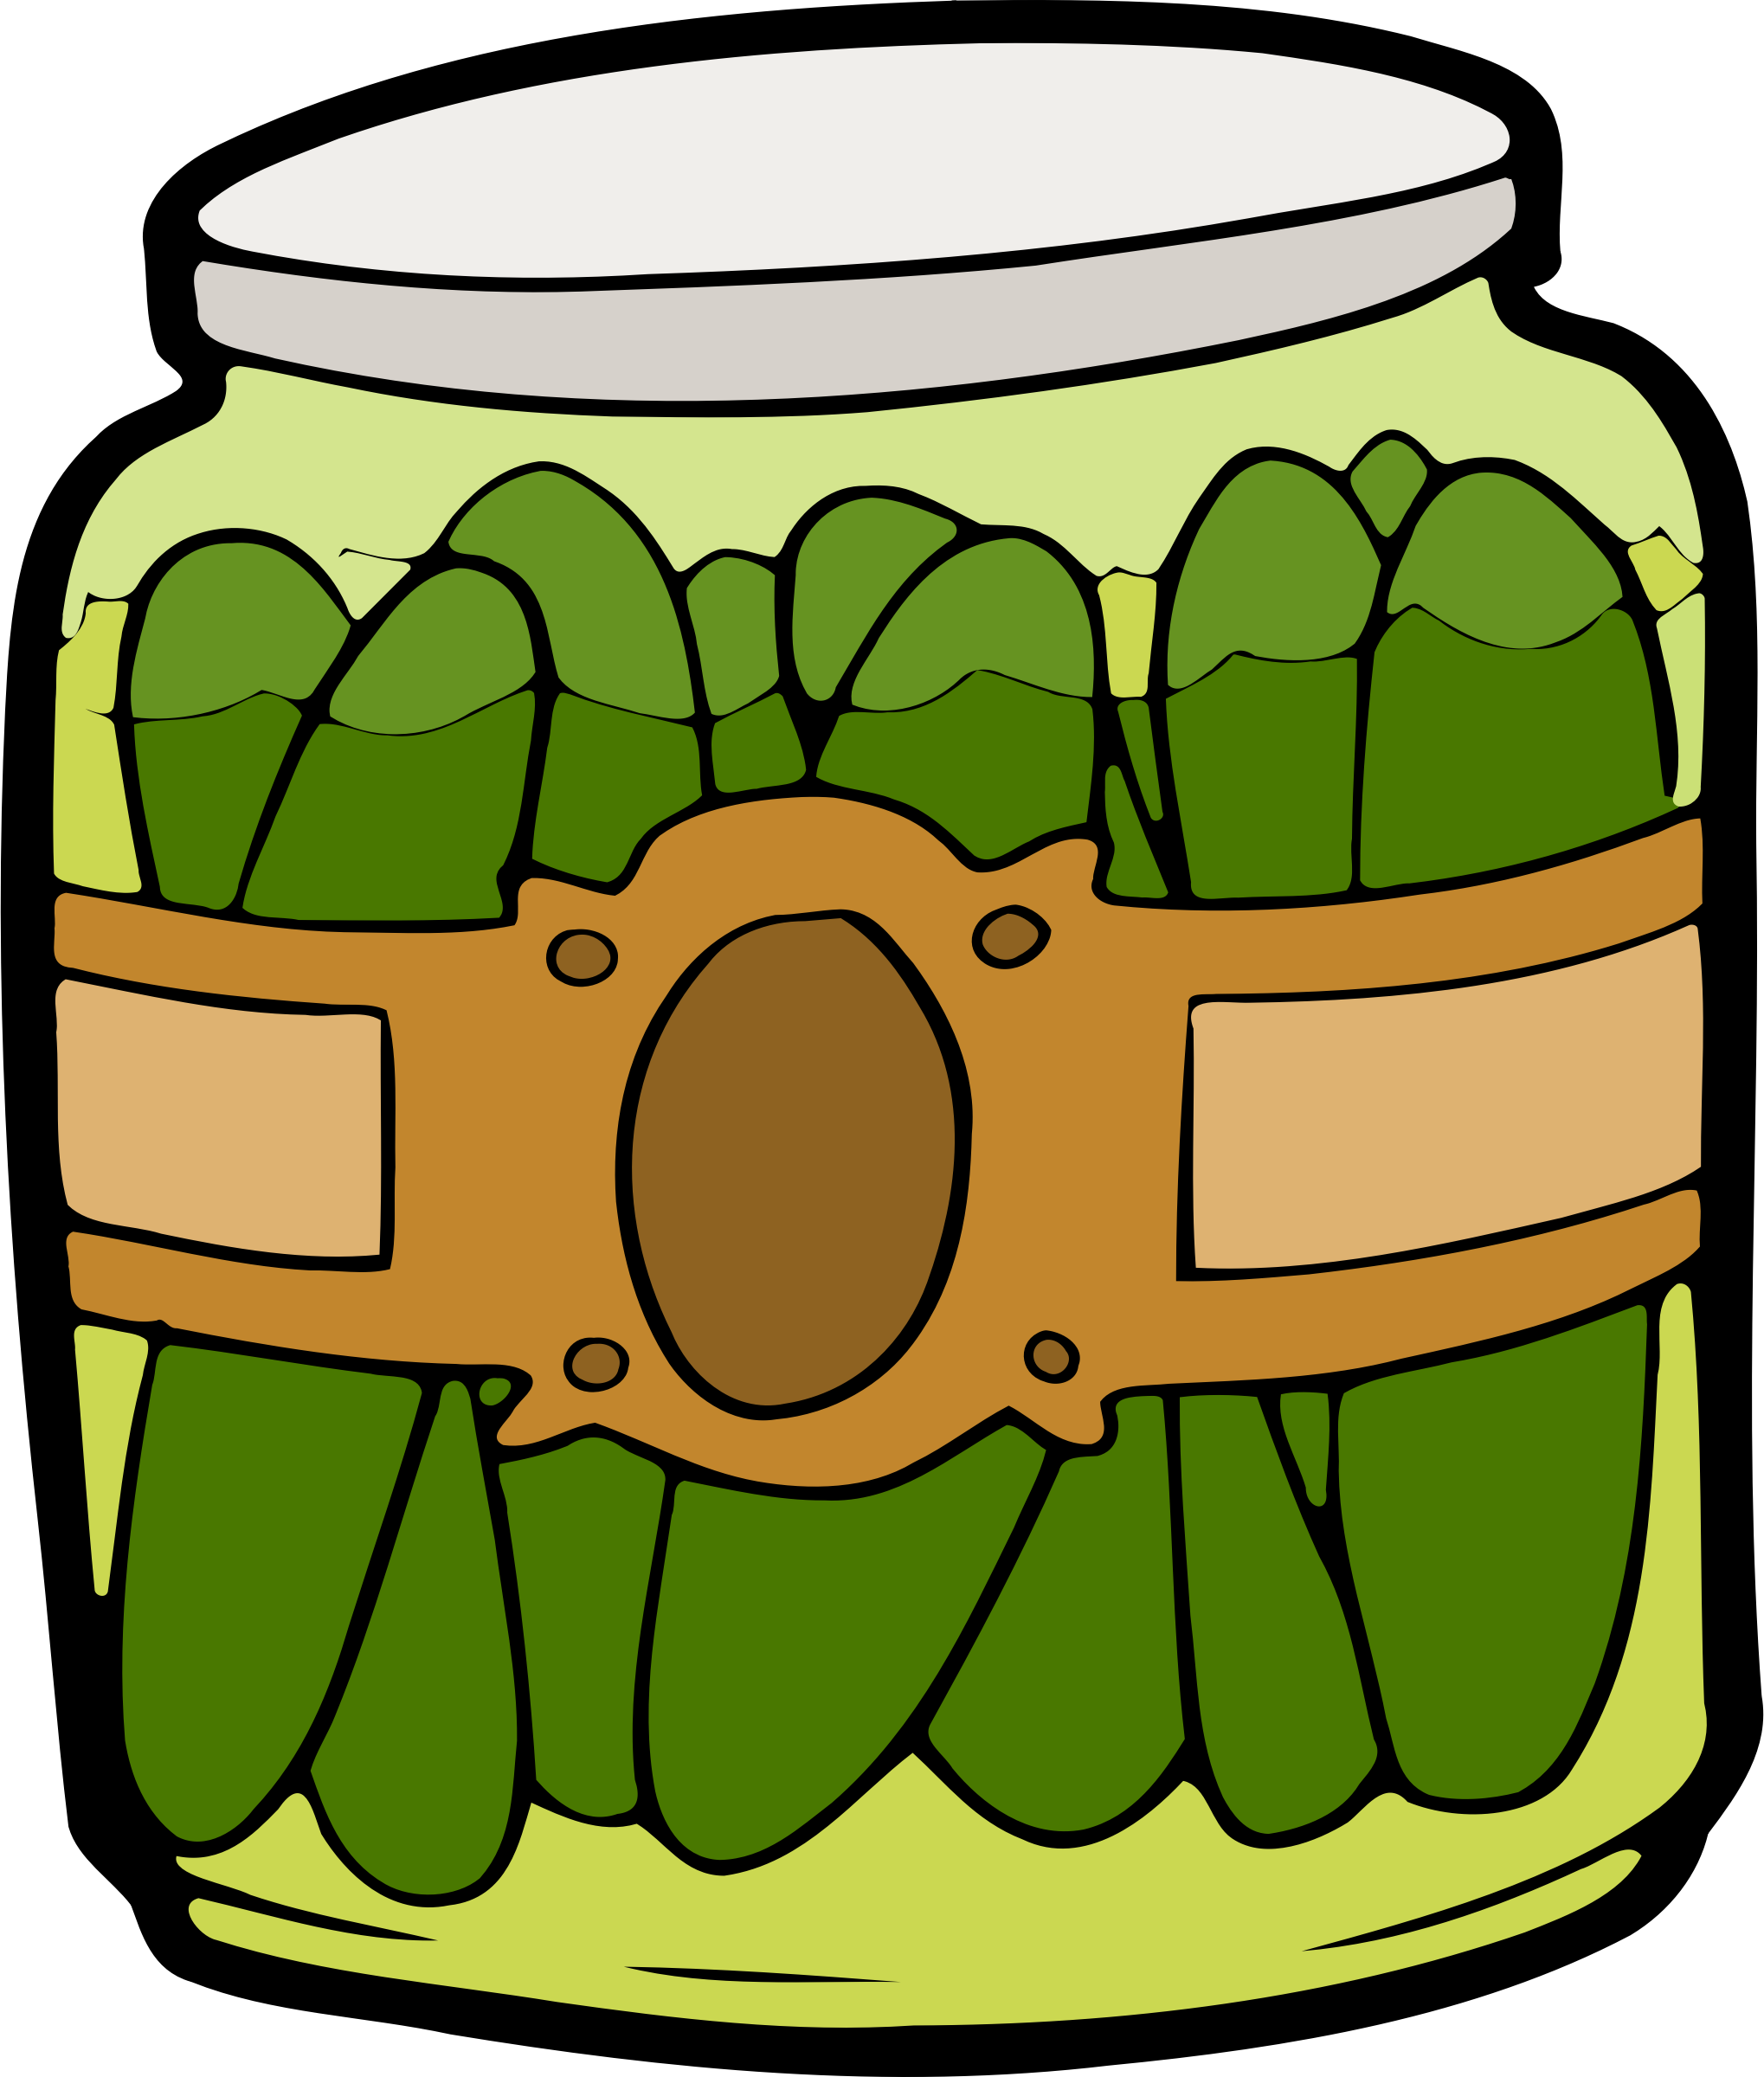 Jar of Pickles Vector Clipart image - Free stock photo ...